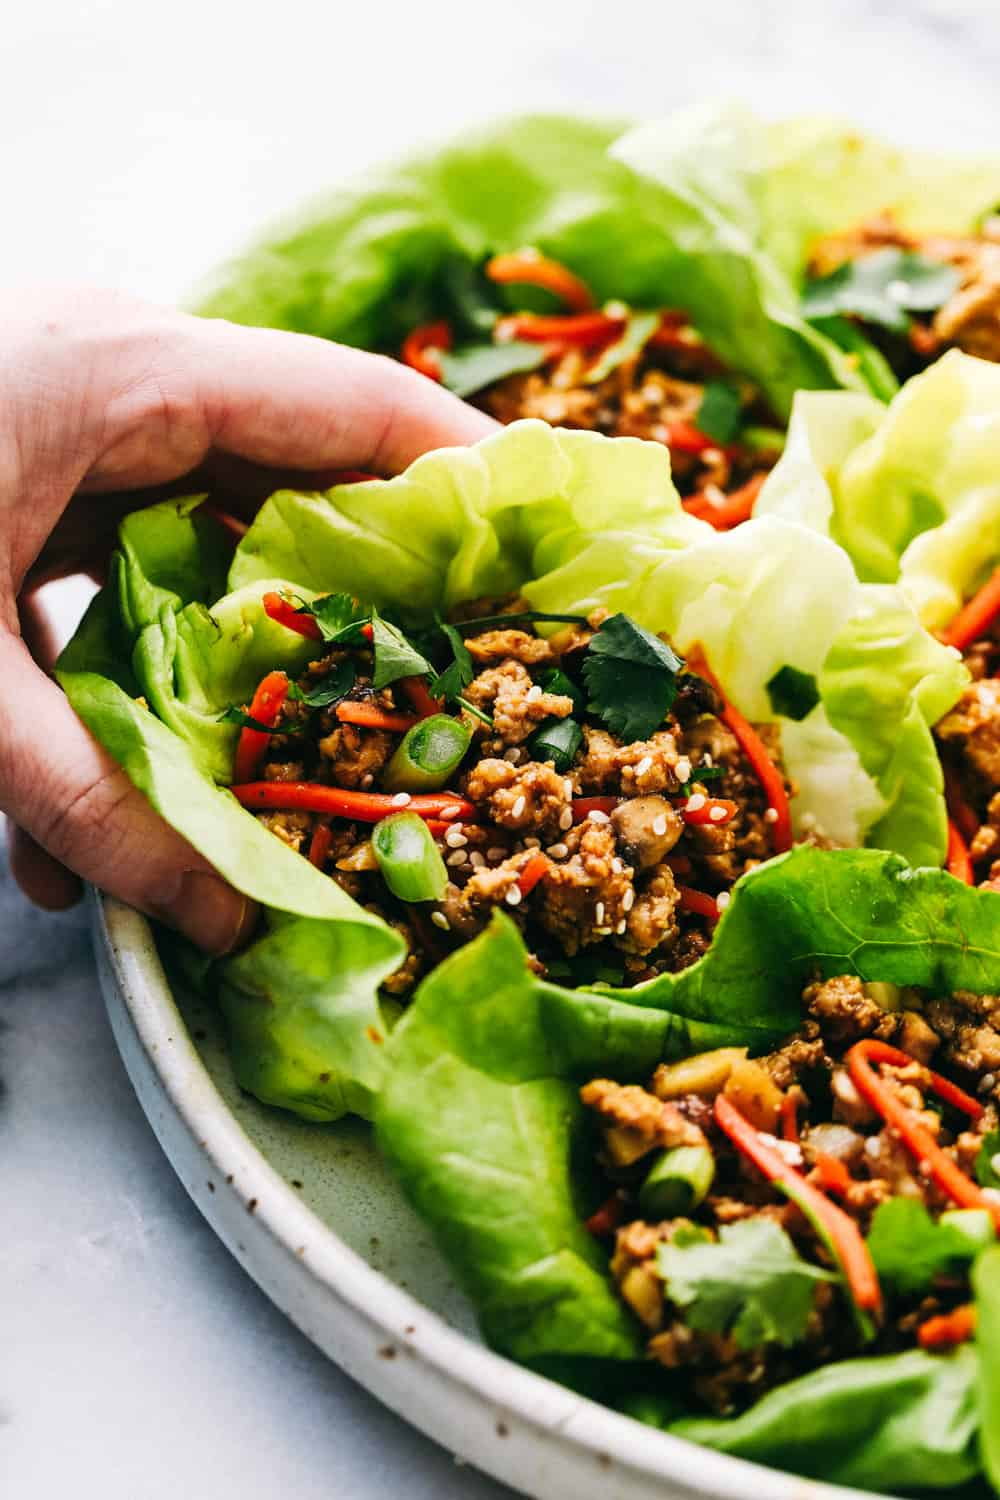 Lettuce wraps on a white plate